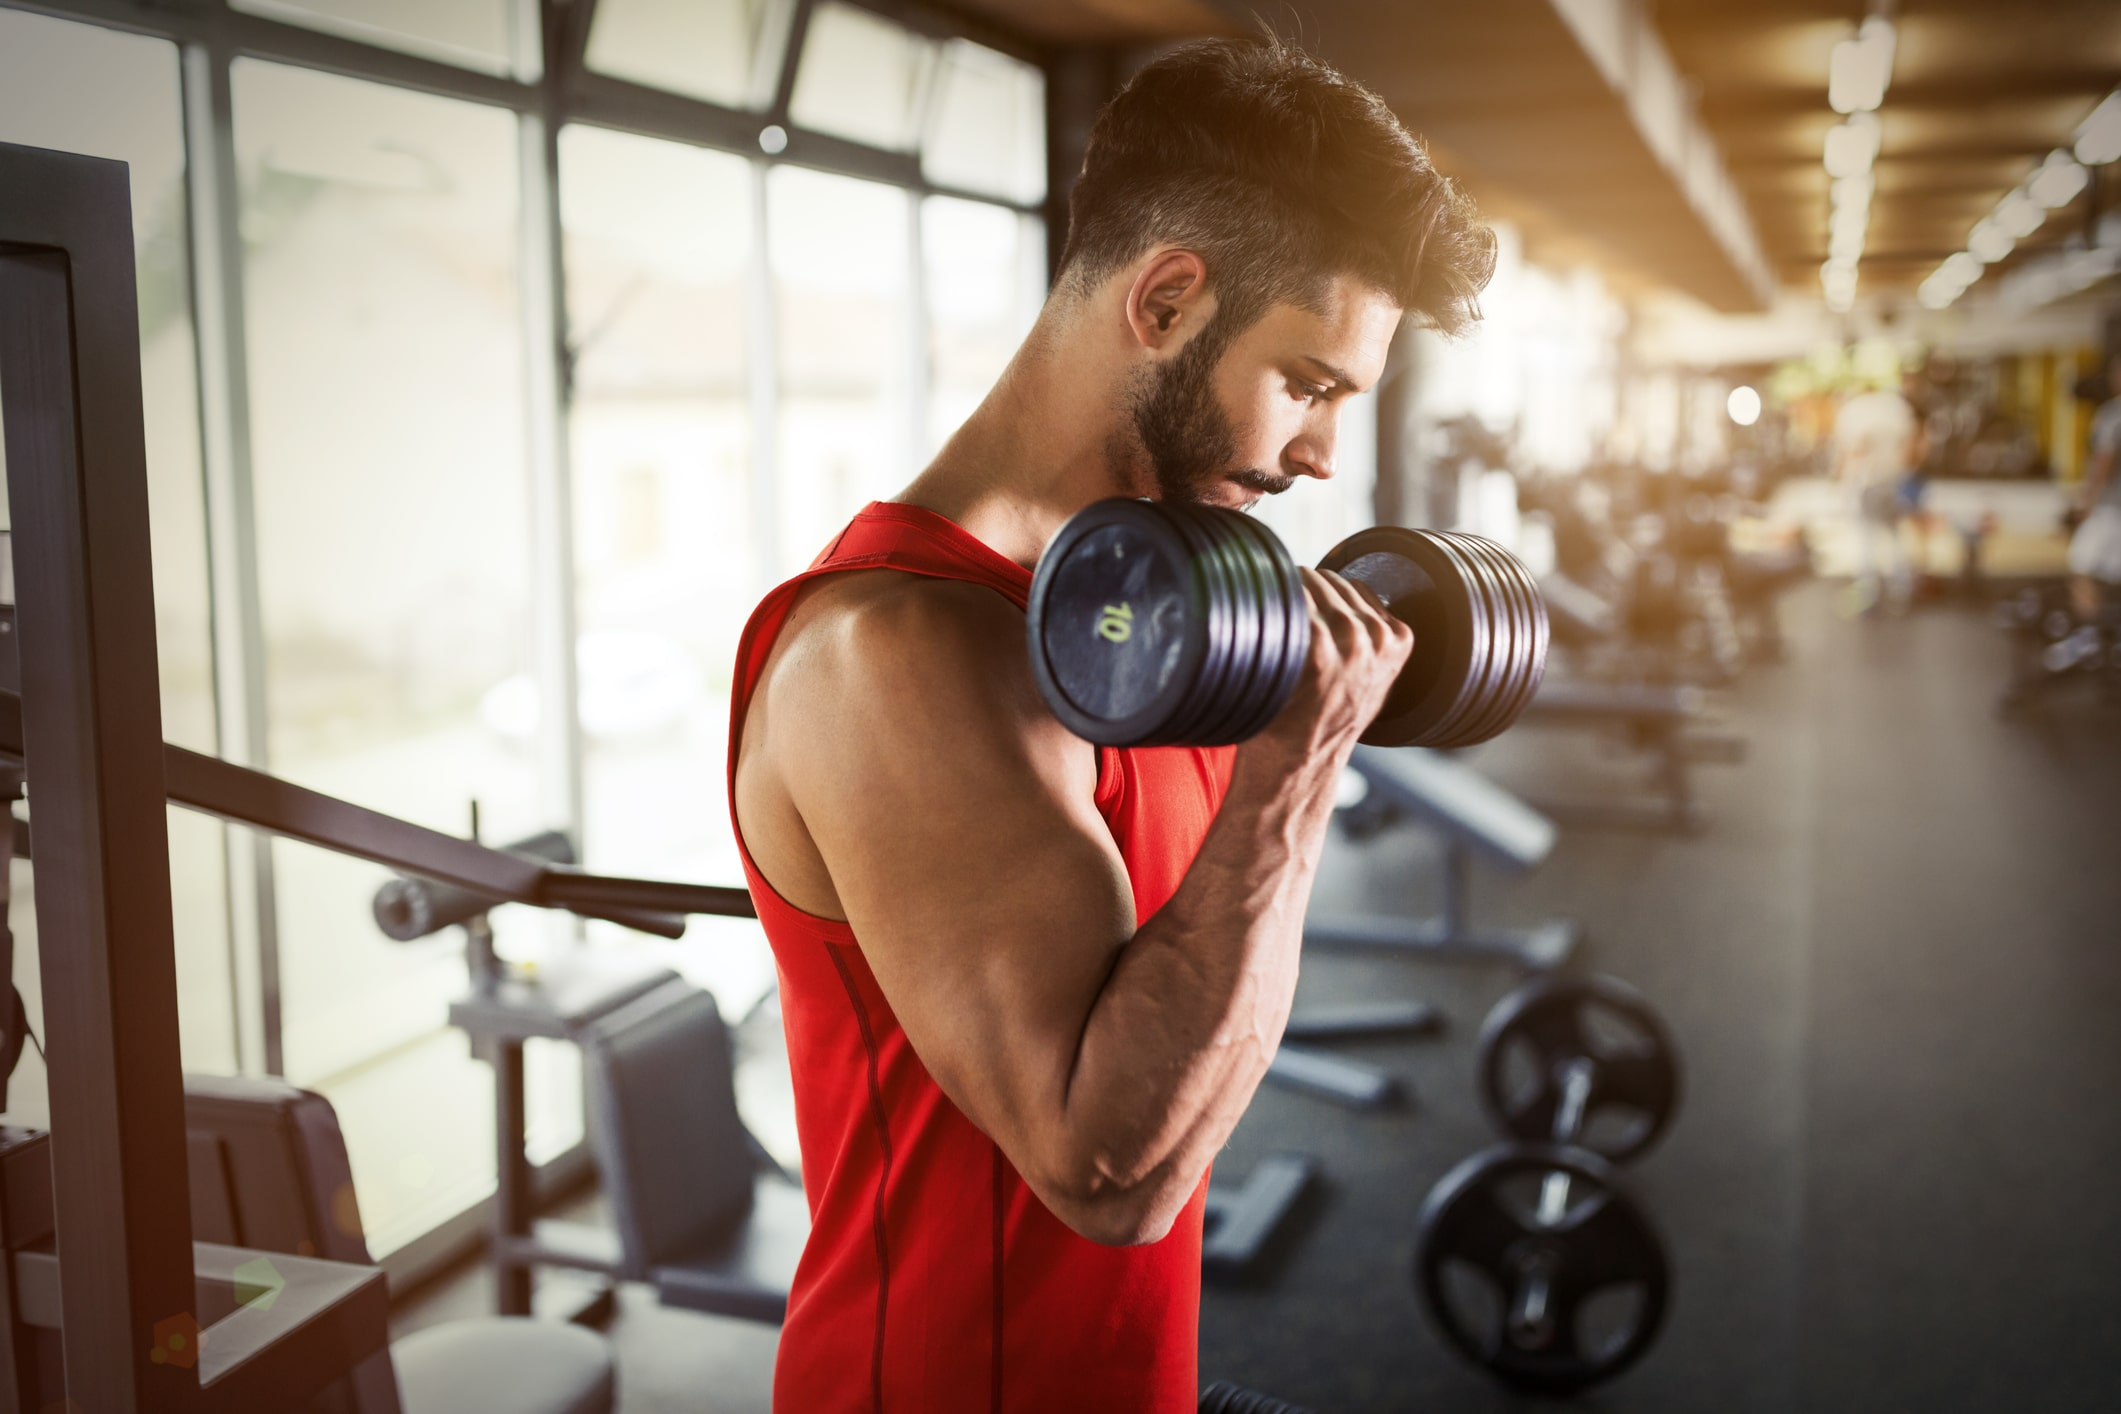 Fasted Workouts: What Are They And Are They Good For Losing Weight?